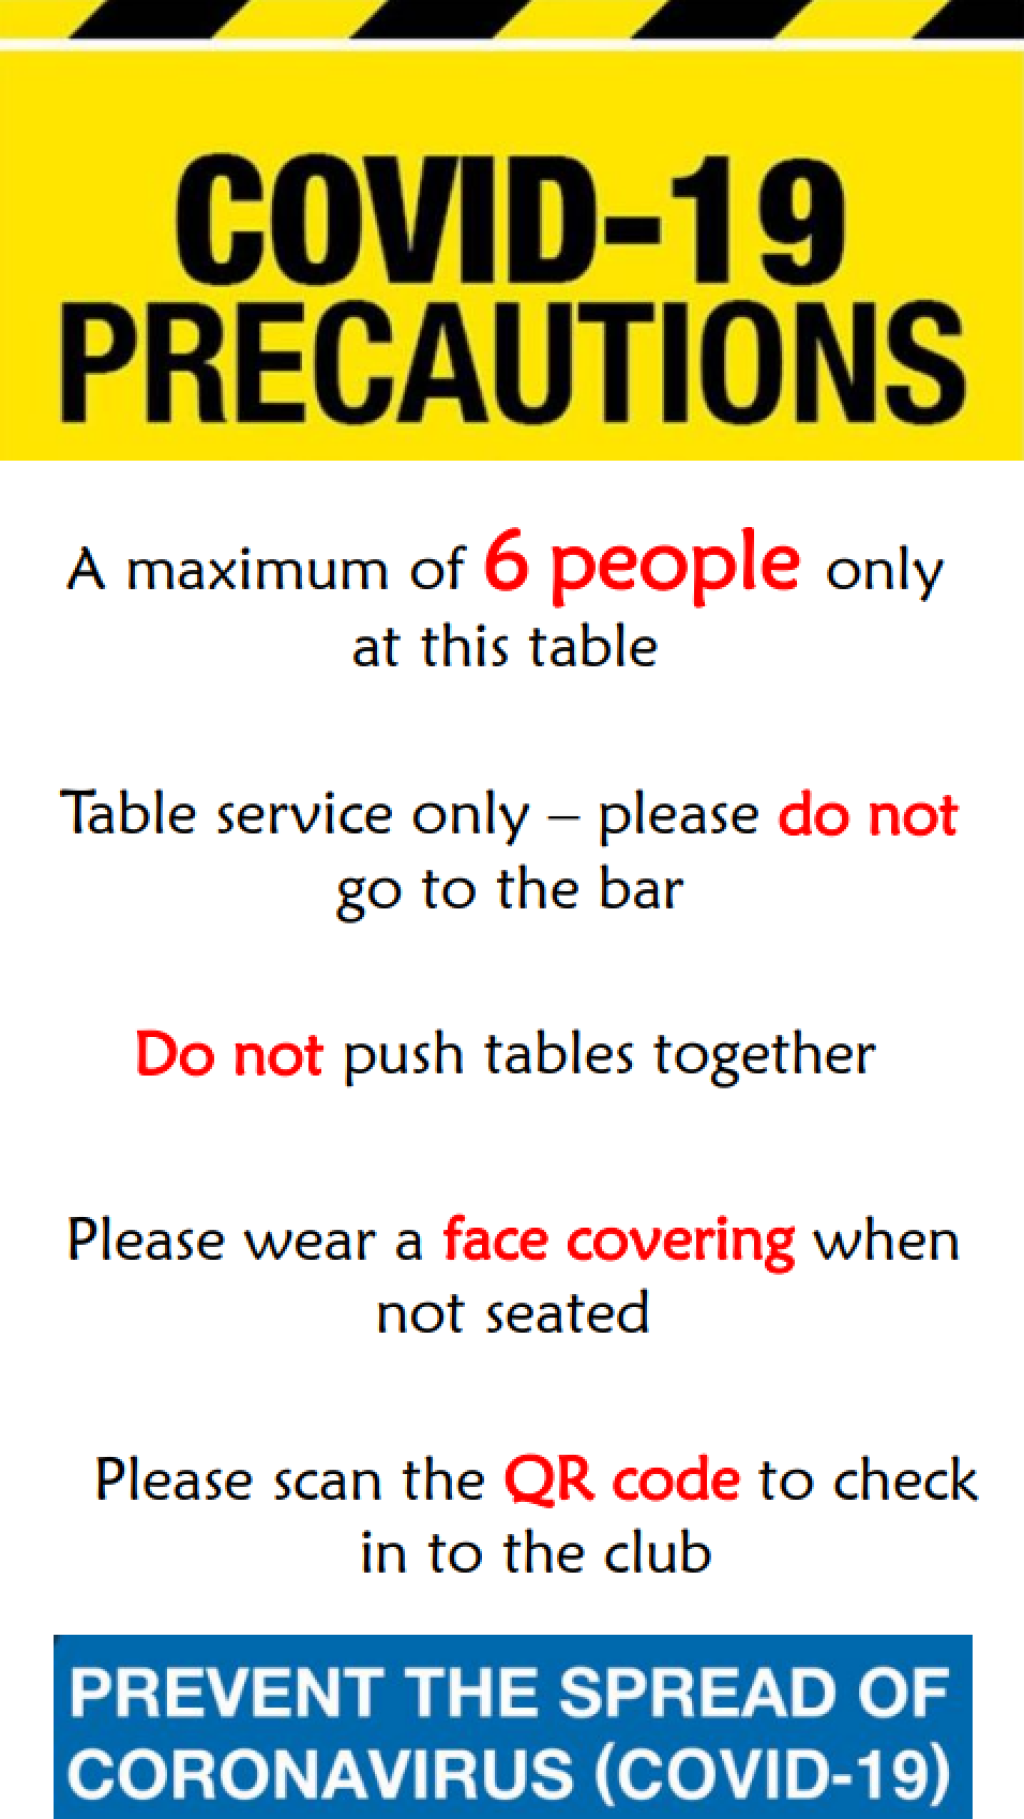 Updated guidance for visiting the bar